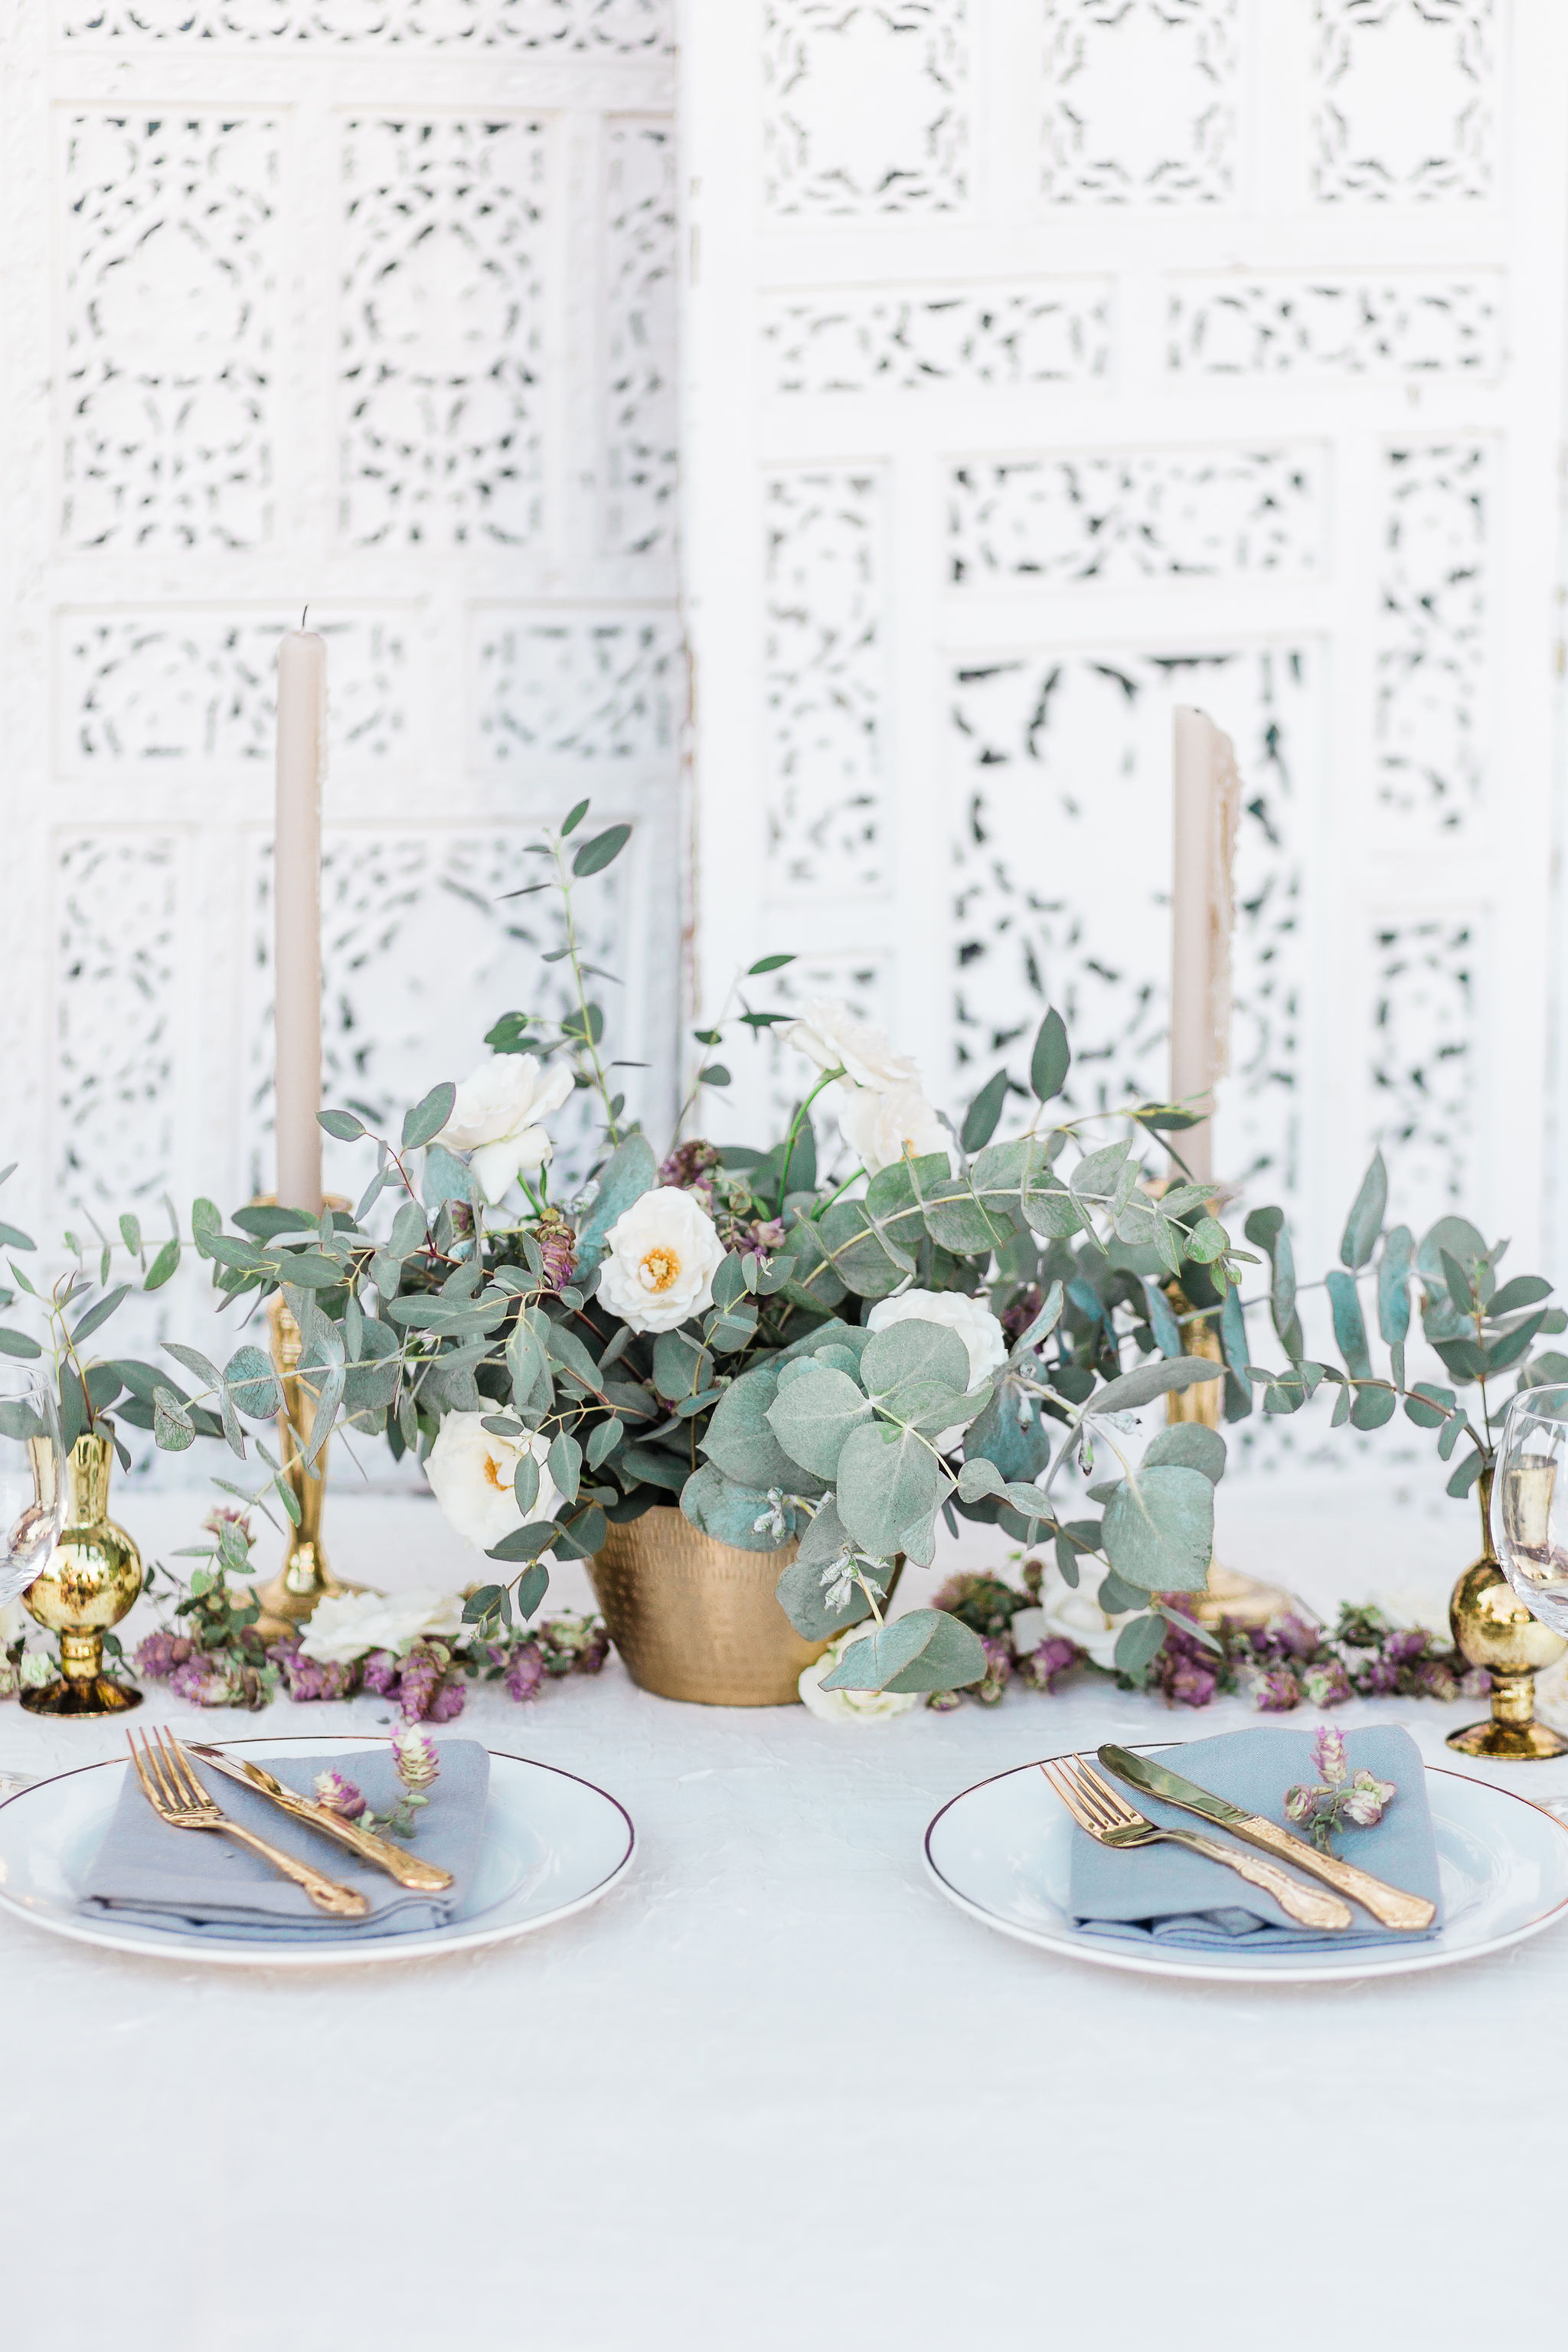 Georgia-Ruth-Photography-Flat-Lays-Table-Details-98.jpg